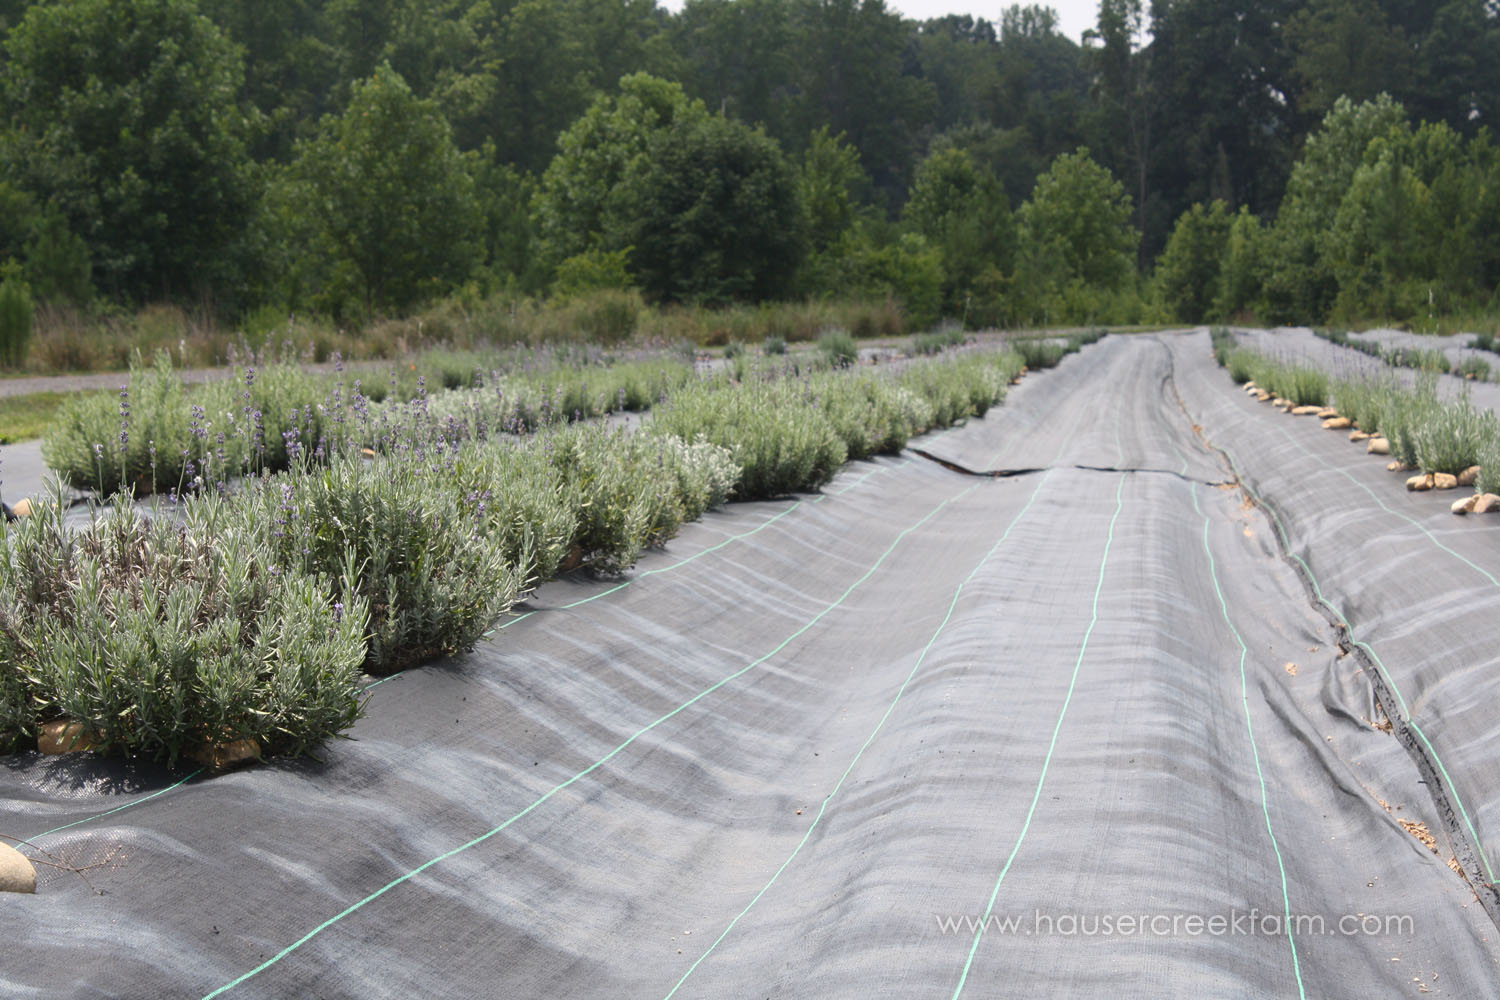 rows of lavender-plants-growing-at-hauser-creek-farm-IMG_0408 (2).jpg